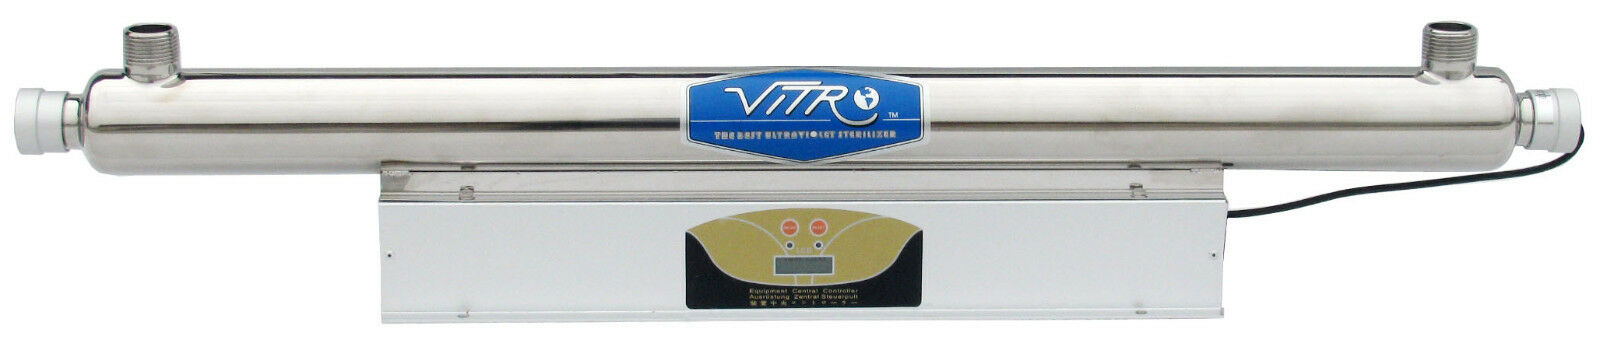 Uv sterilizer,Pure water Clarifier  purifier for home,lab&med use 3000L hour